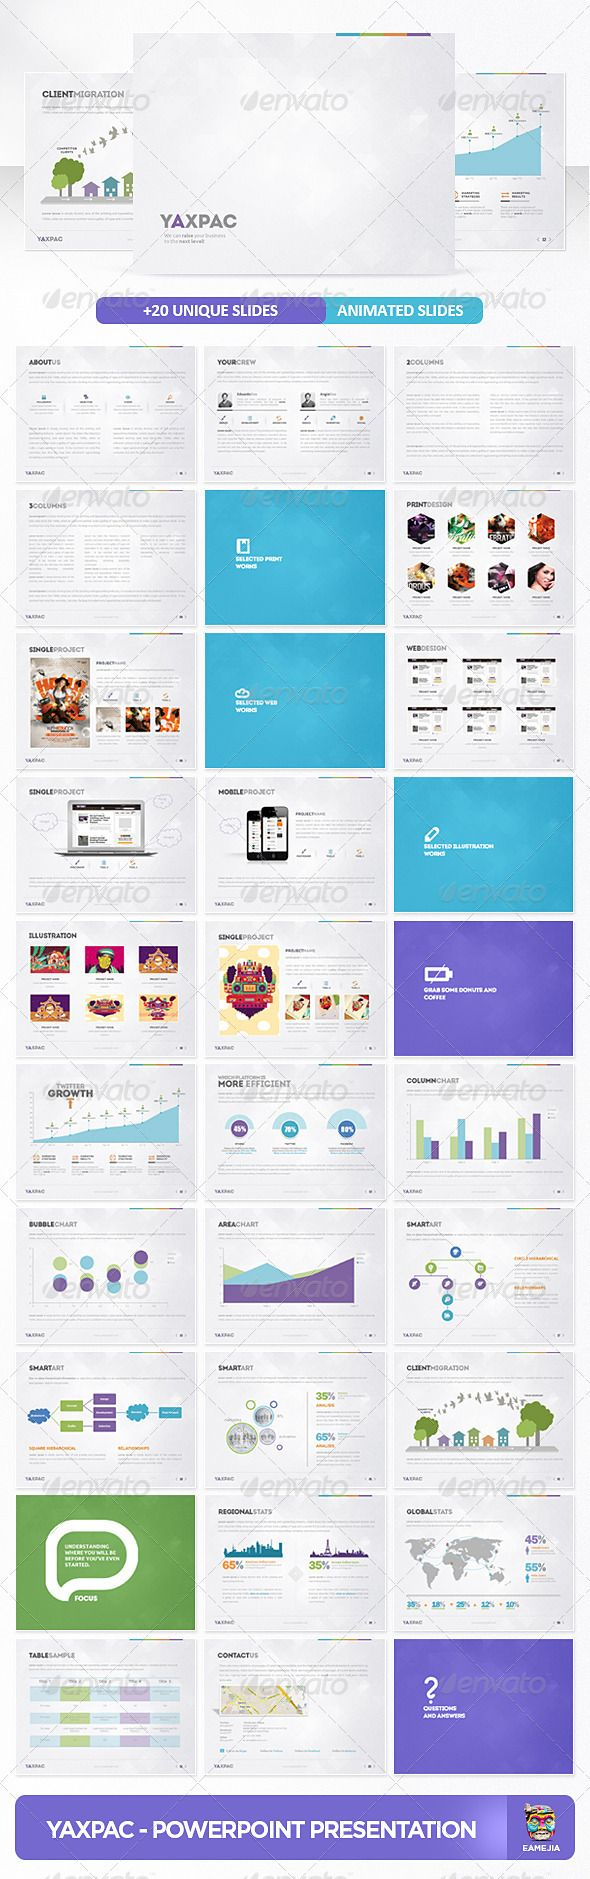 Yaxpac PowerPoint Presentation Template 3396 : wpthems